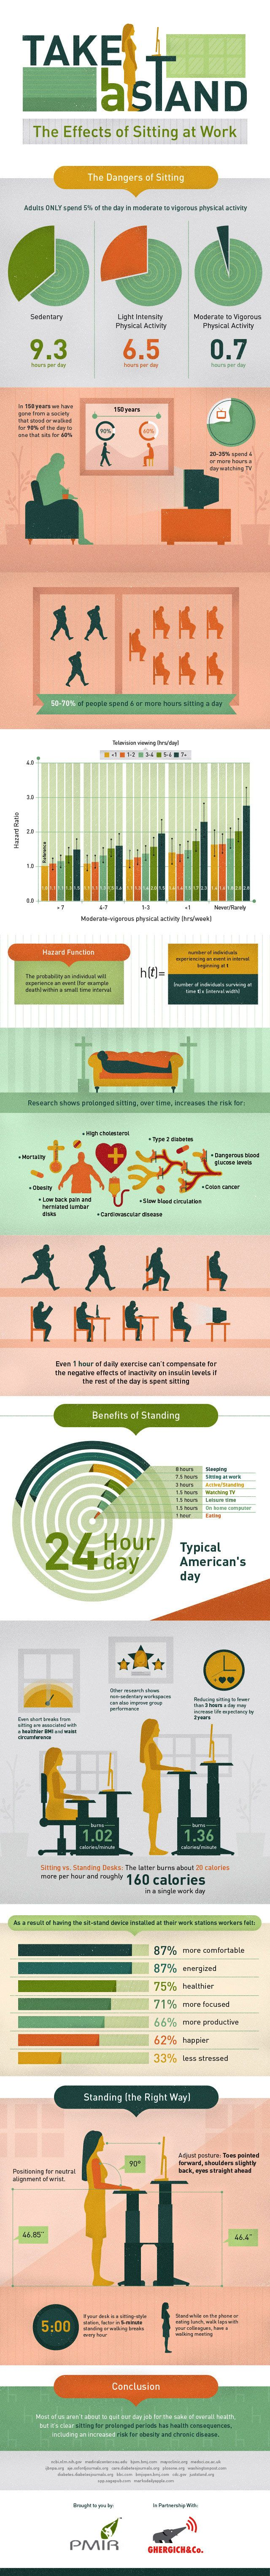 Sitting All Day Is Really, Really Bad For You (Infographic) - mindbodygreen.com